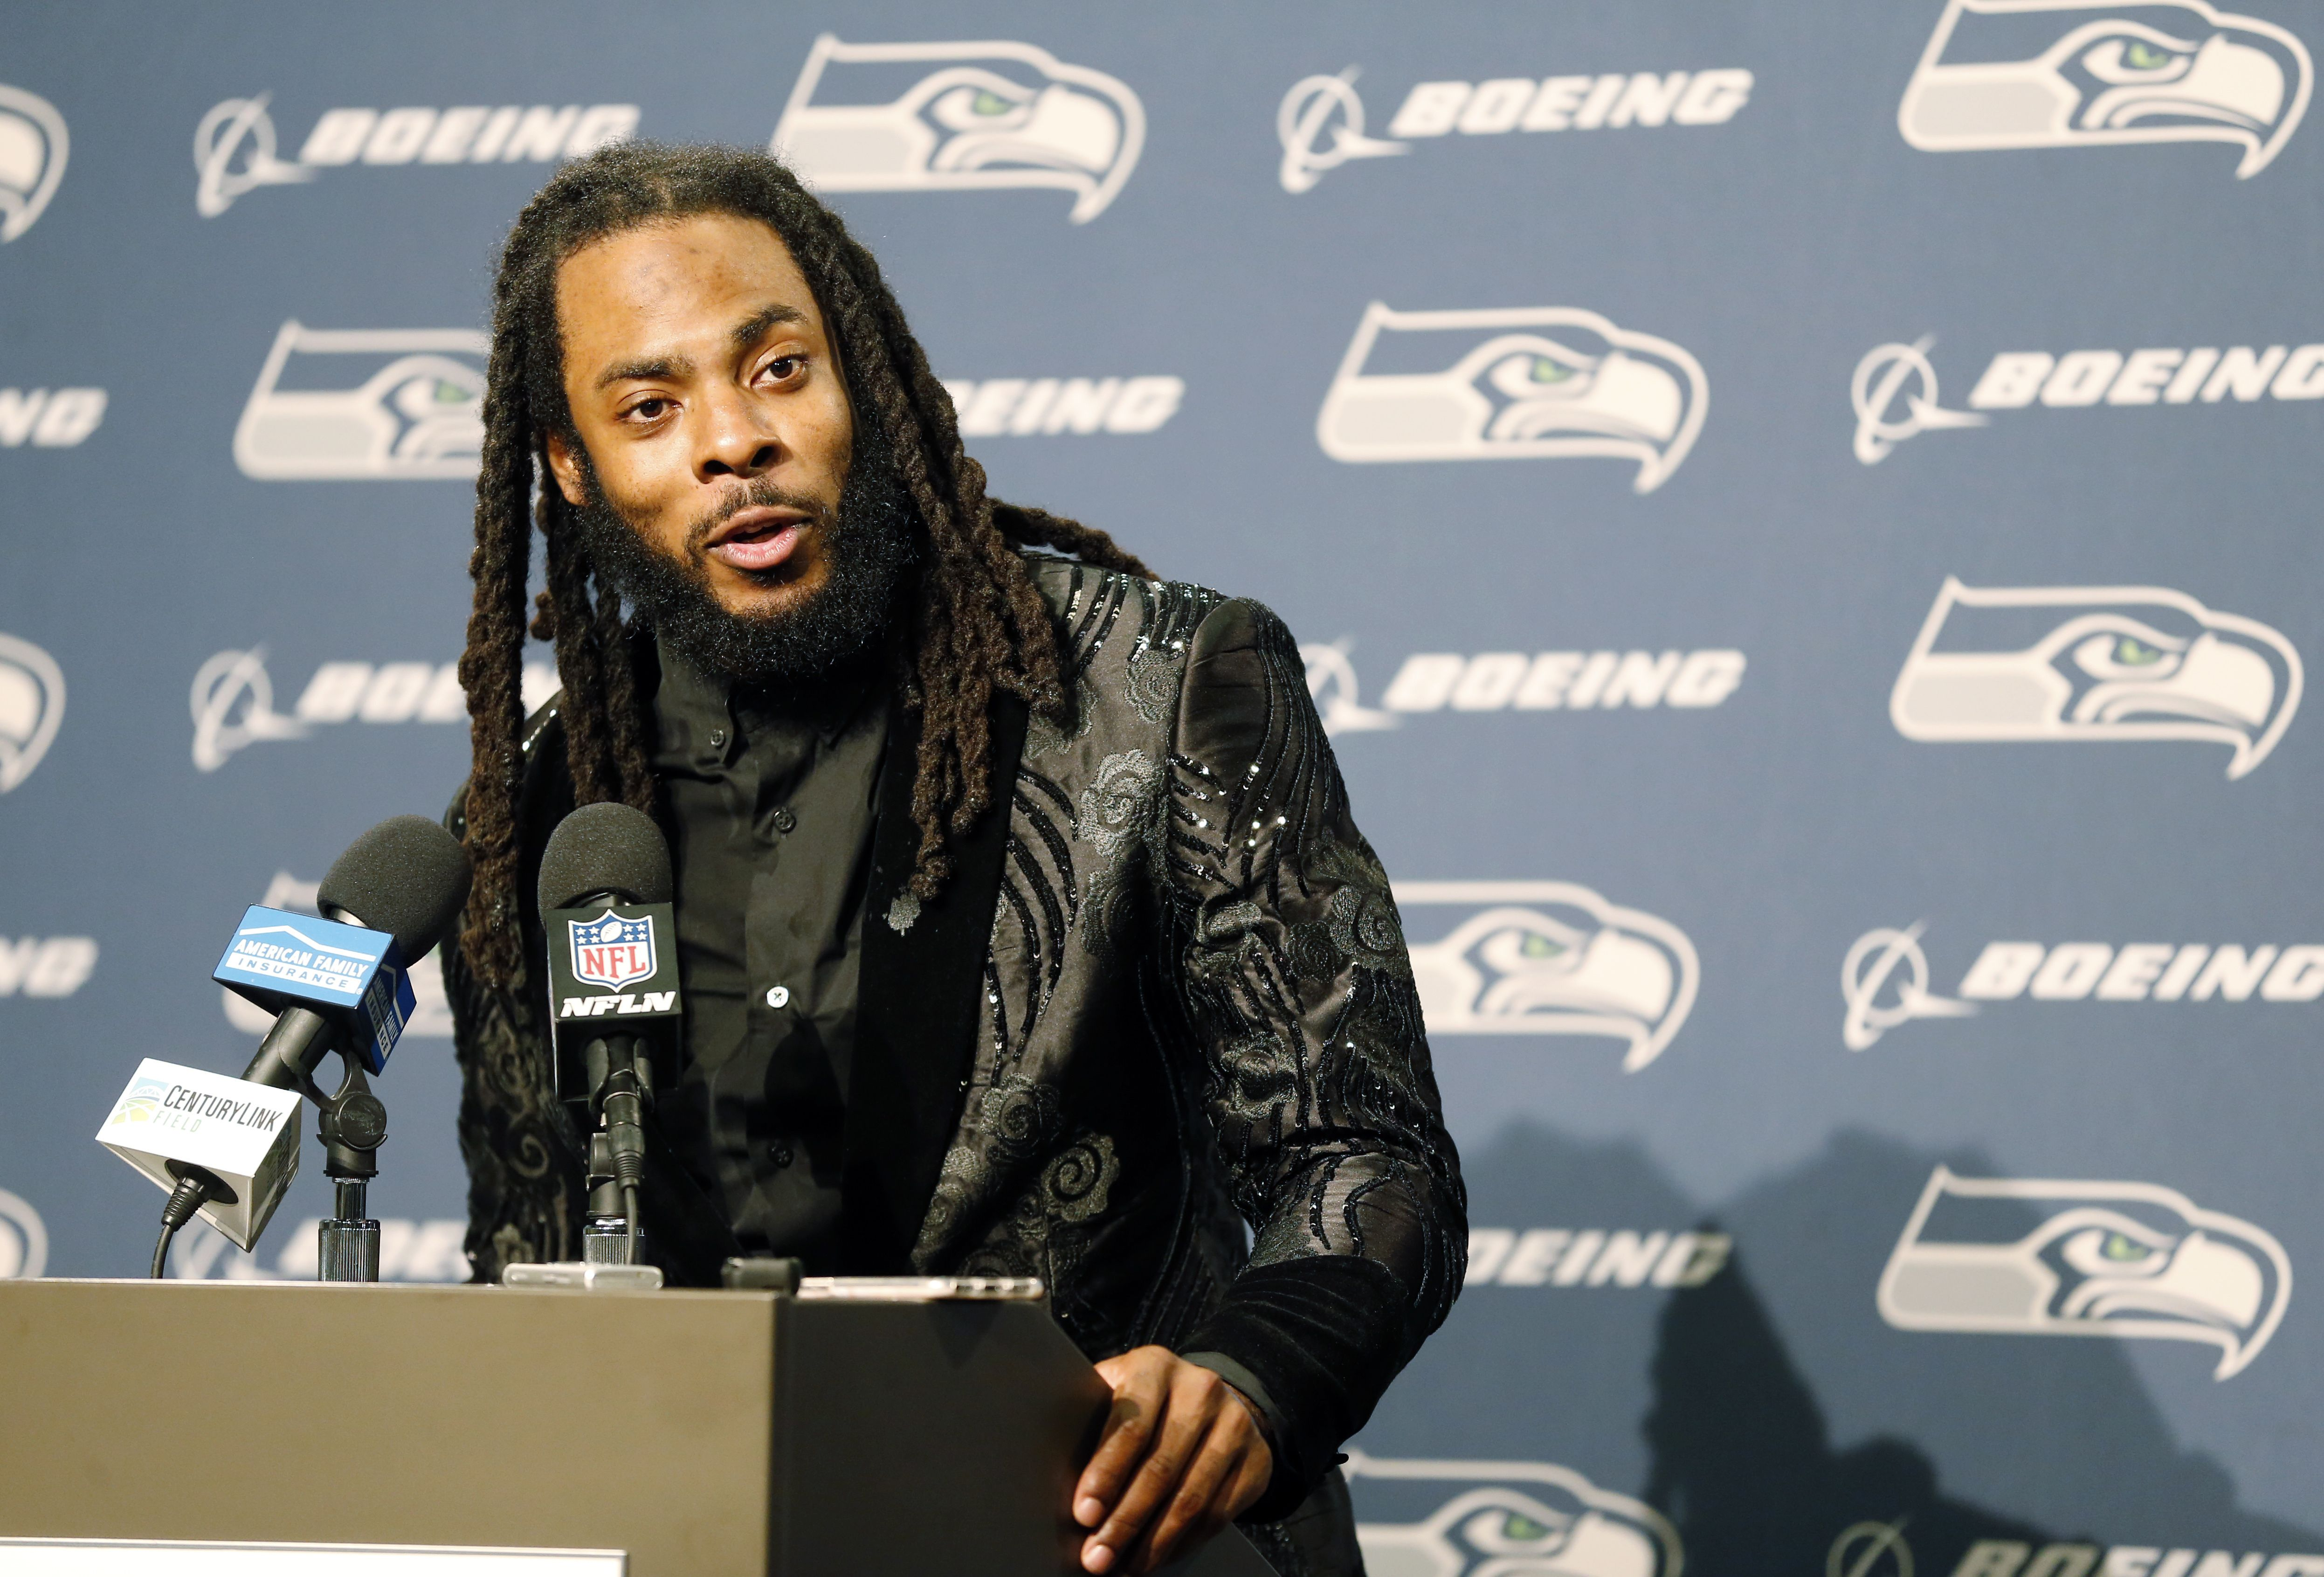 Seattle Seahawks cornerback Richard Sherman talks to reporters during a post-game press conference following an NFL football game against the Houston Texans, in Seattle, October 29, 2017.